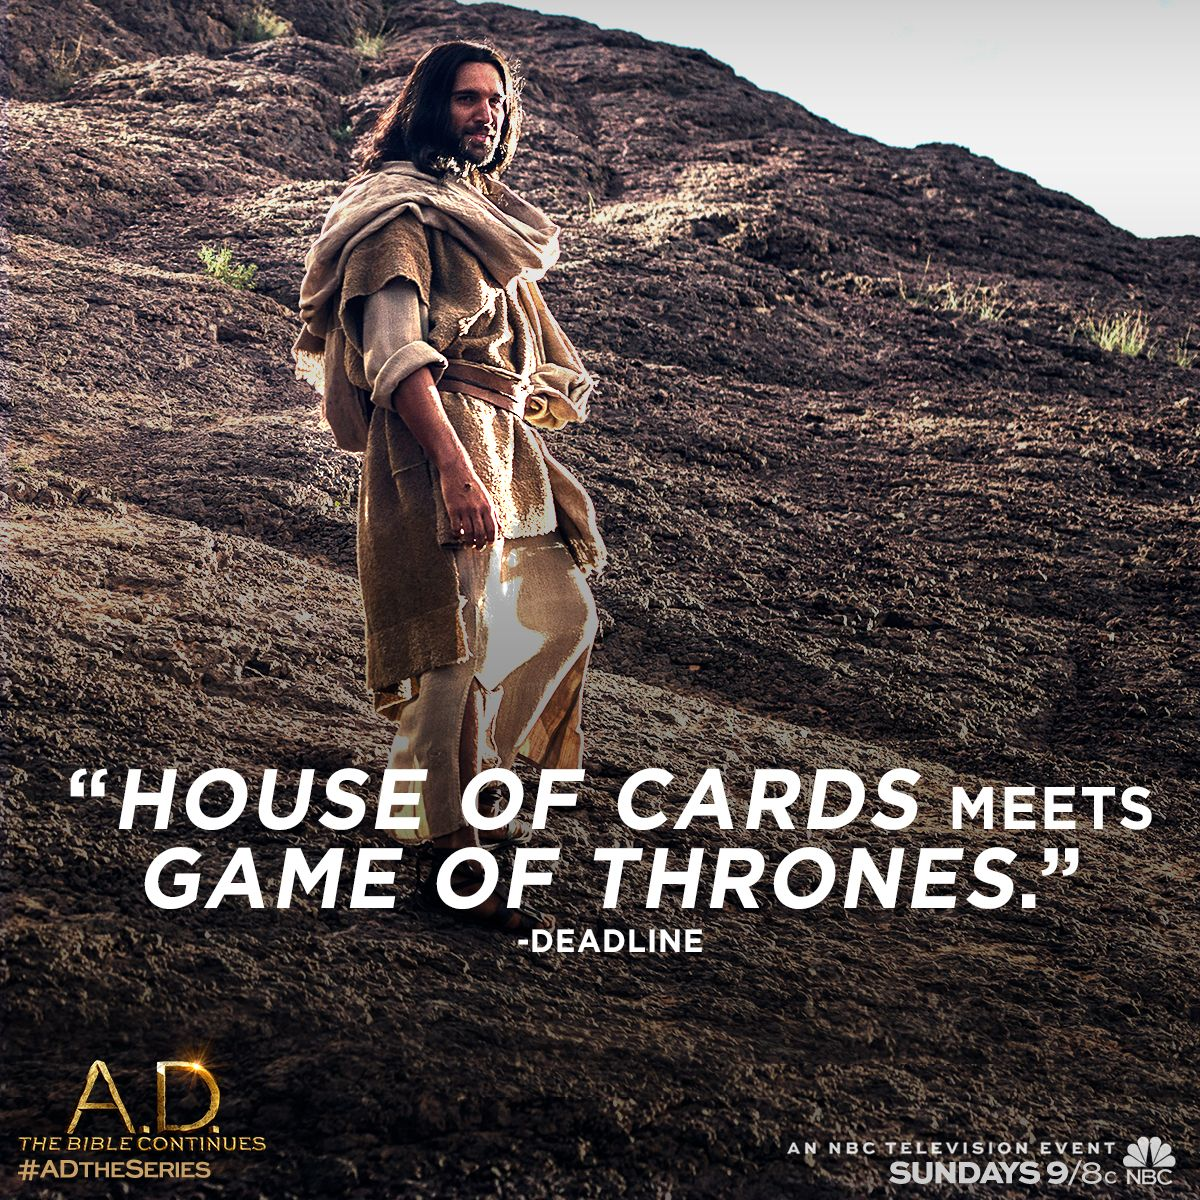 It's epic storytelling on a grand scale. An all new episode of A.D. The Bible Continues premieres tonight at 9/8c on NBC. | A.D. The Series